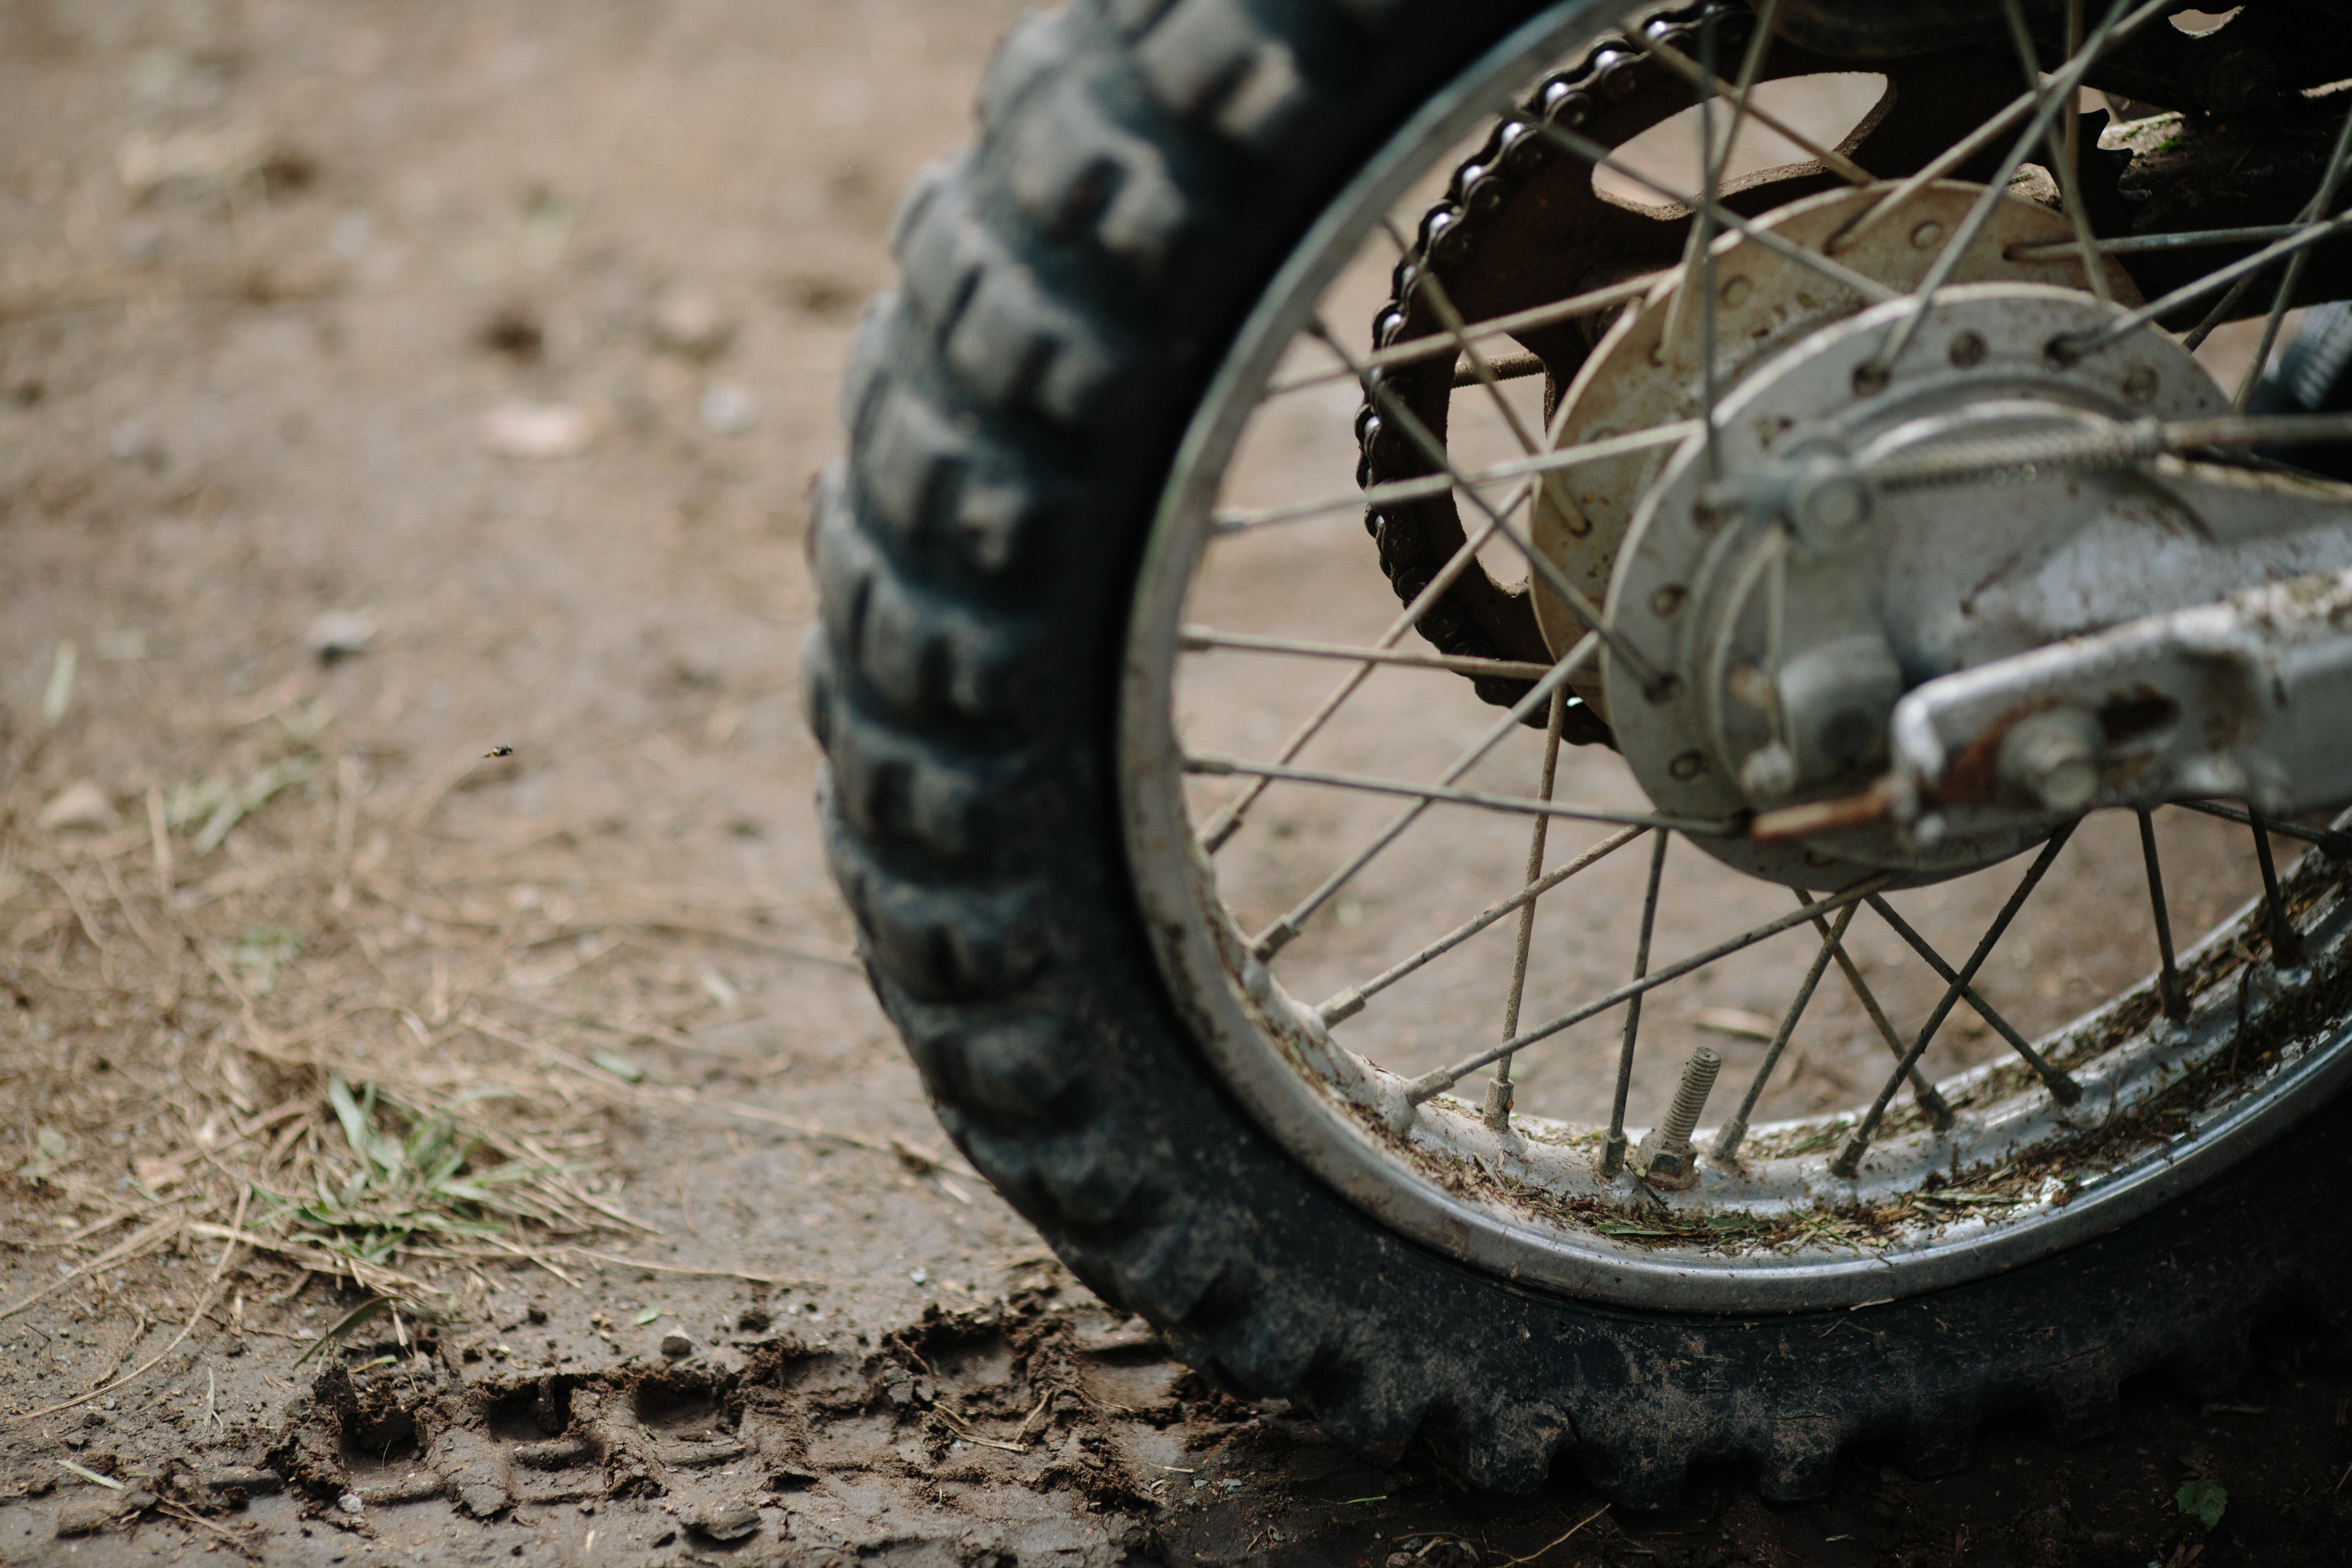 A close-up of a motorcycle tire and muddy track in Gresford.